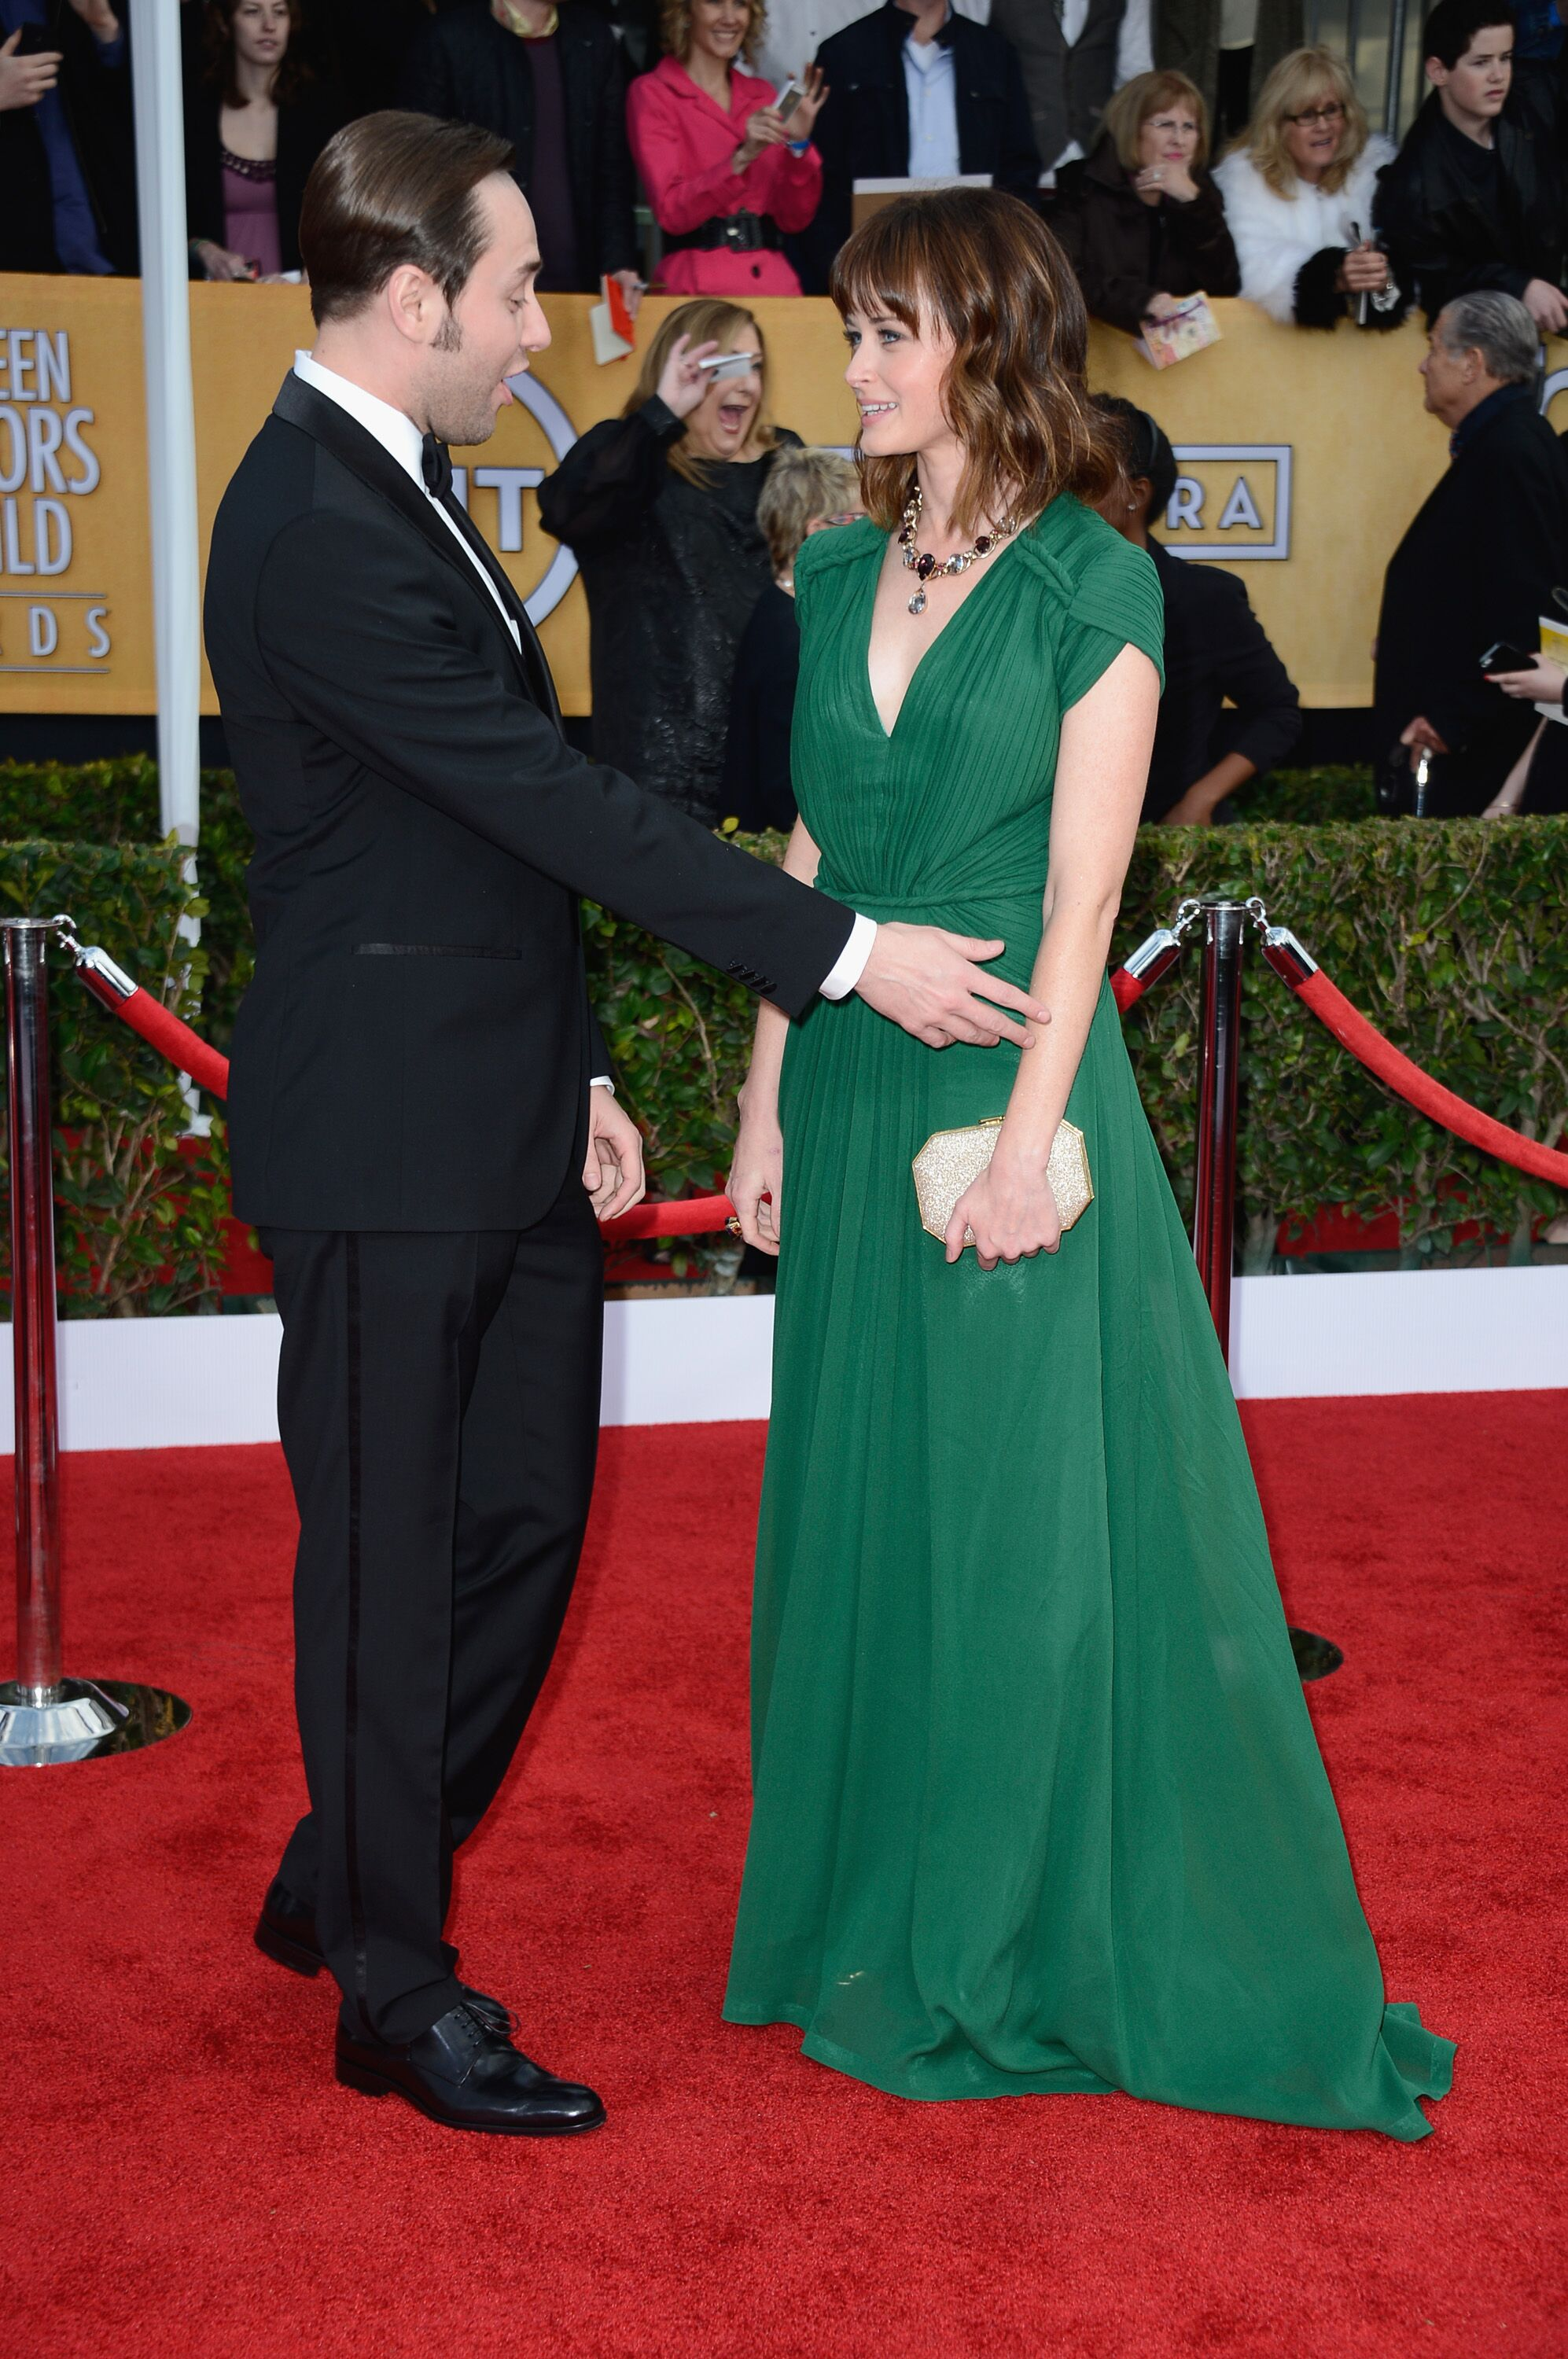 Vincent Kartheiser and Alexis Bledel arrive at the 19th Annual Screen Actors Guild Awards. | Source: Getty Images